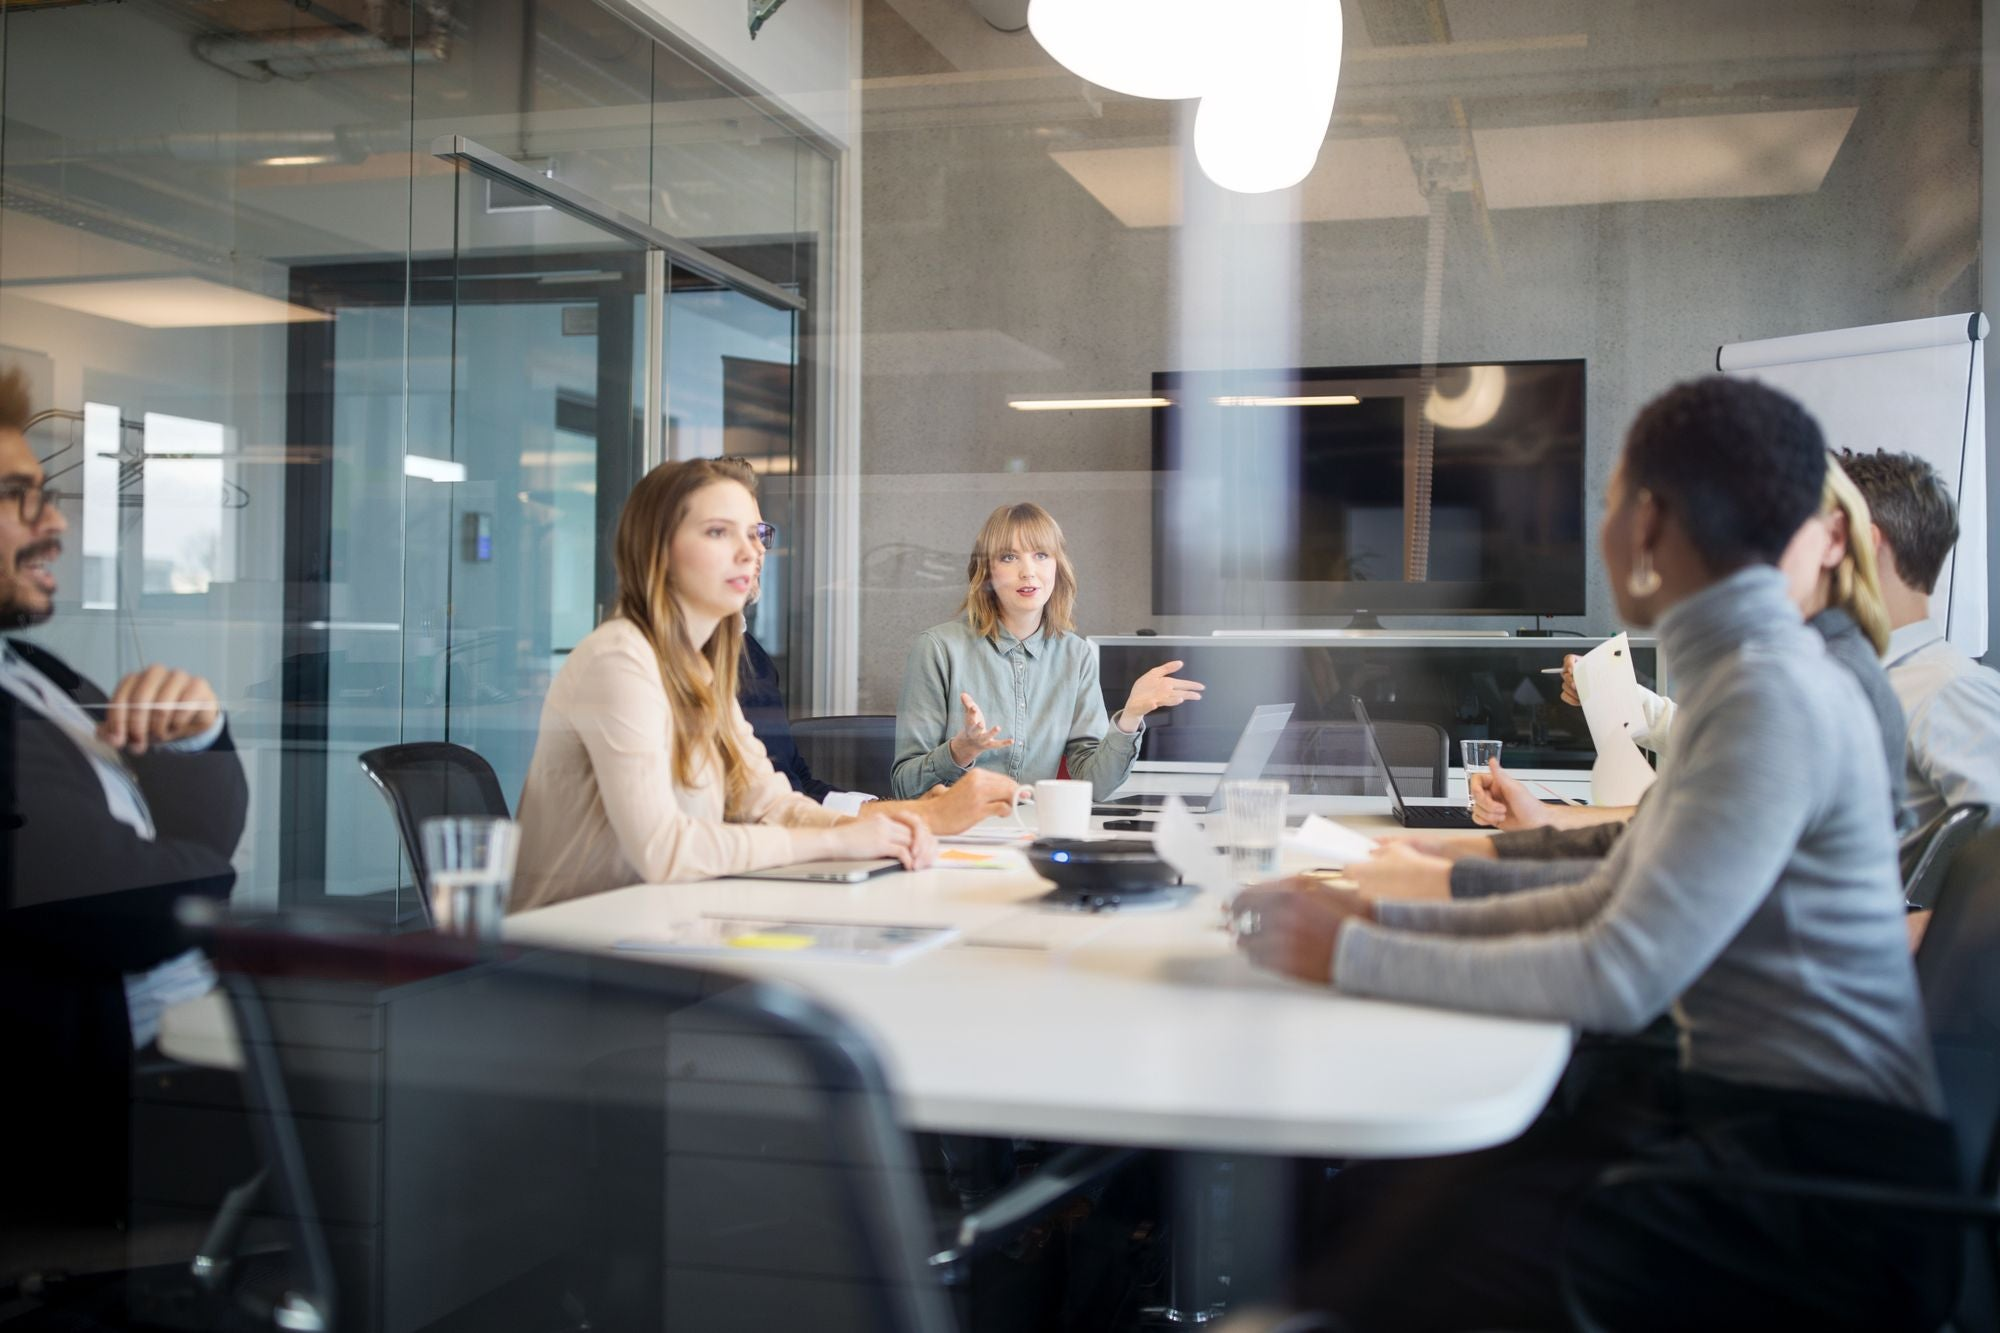 5 Body Language Cues Entrepreneurs Should Pay Attention to in Any Meeting